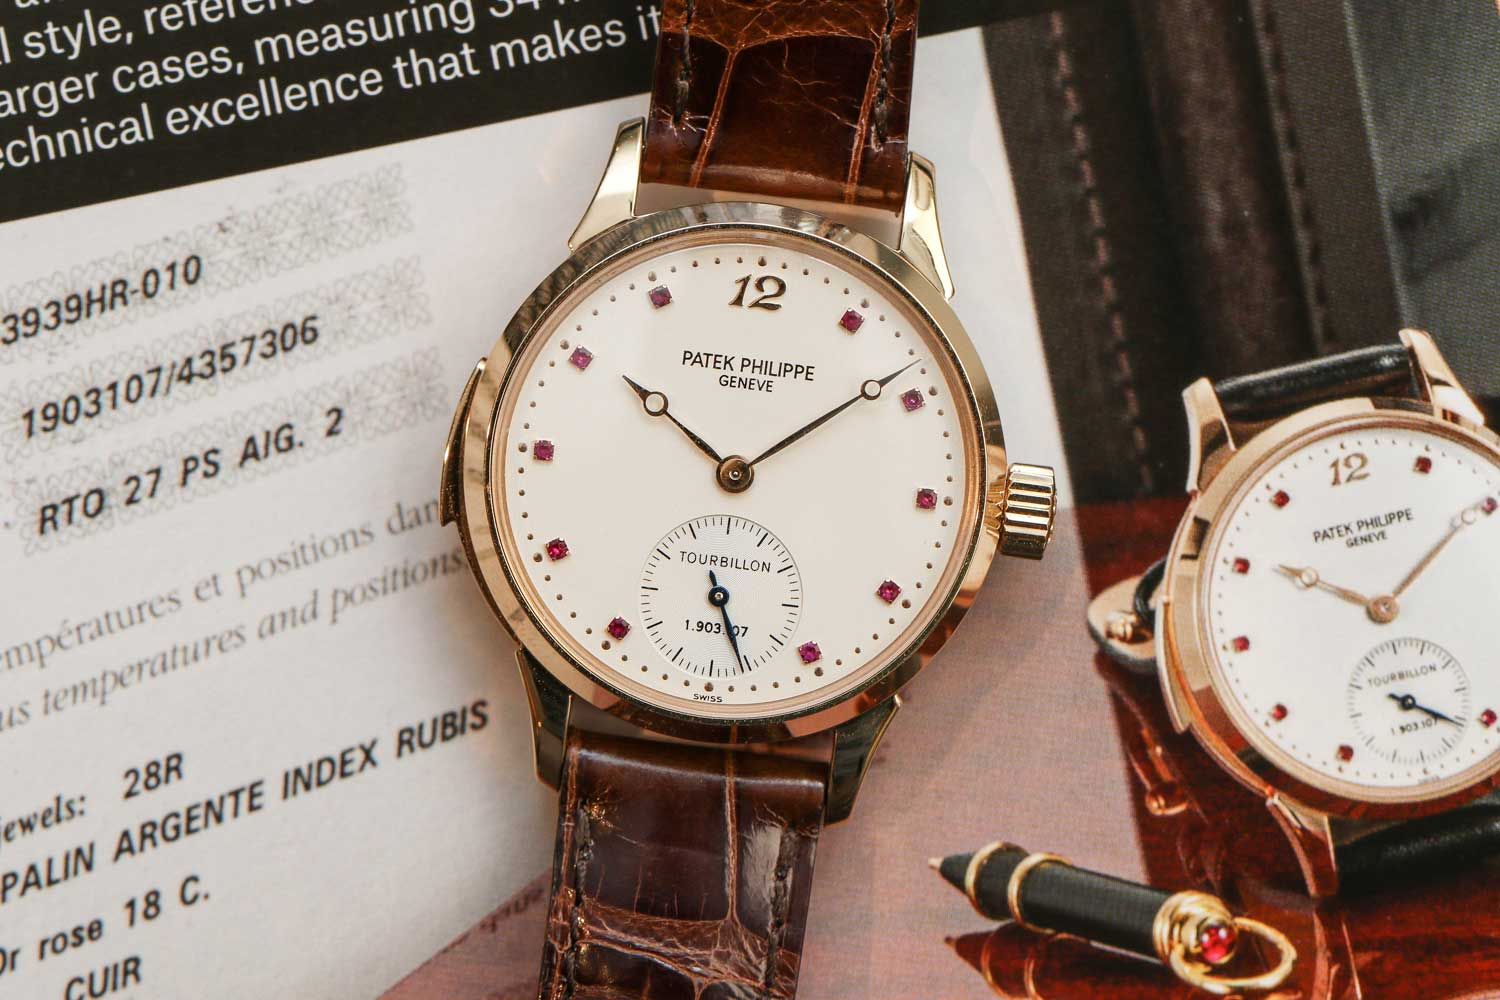 The only known ref. 3939 with ruby hour markers (©Revolution)